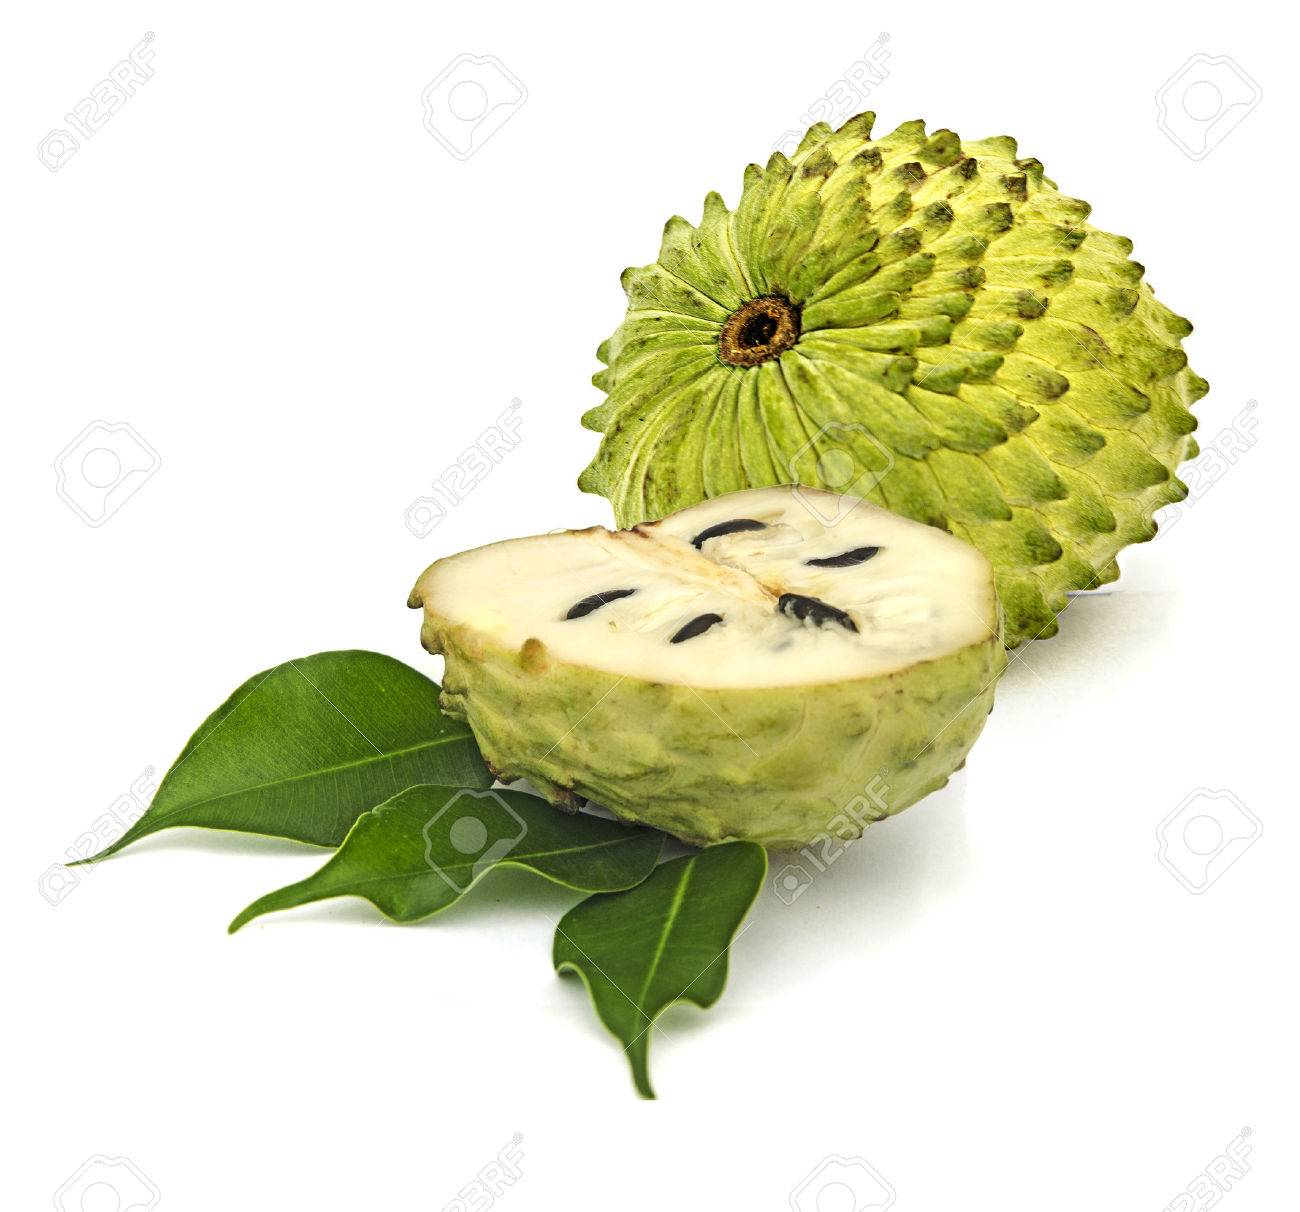 Soursop sections isolated on white background Stock Photo - 32950288